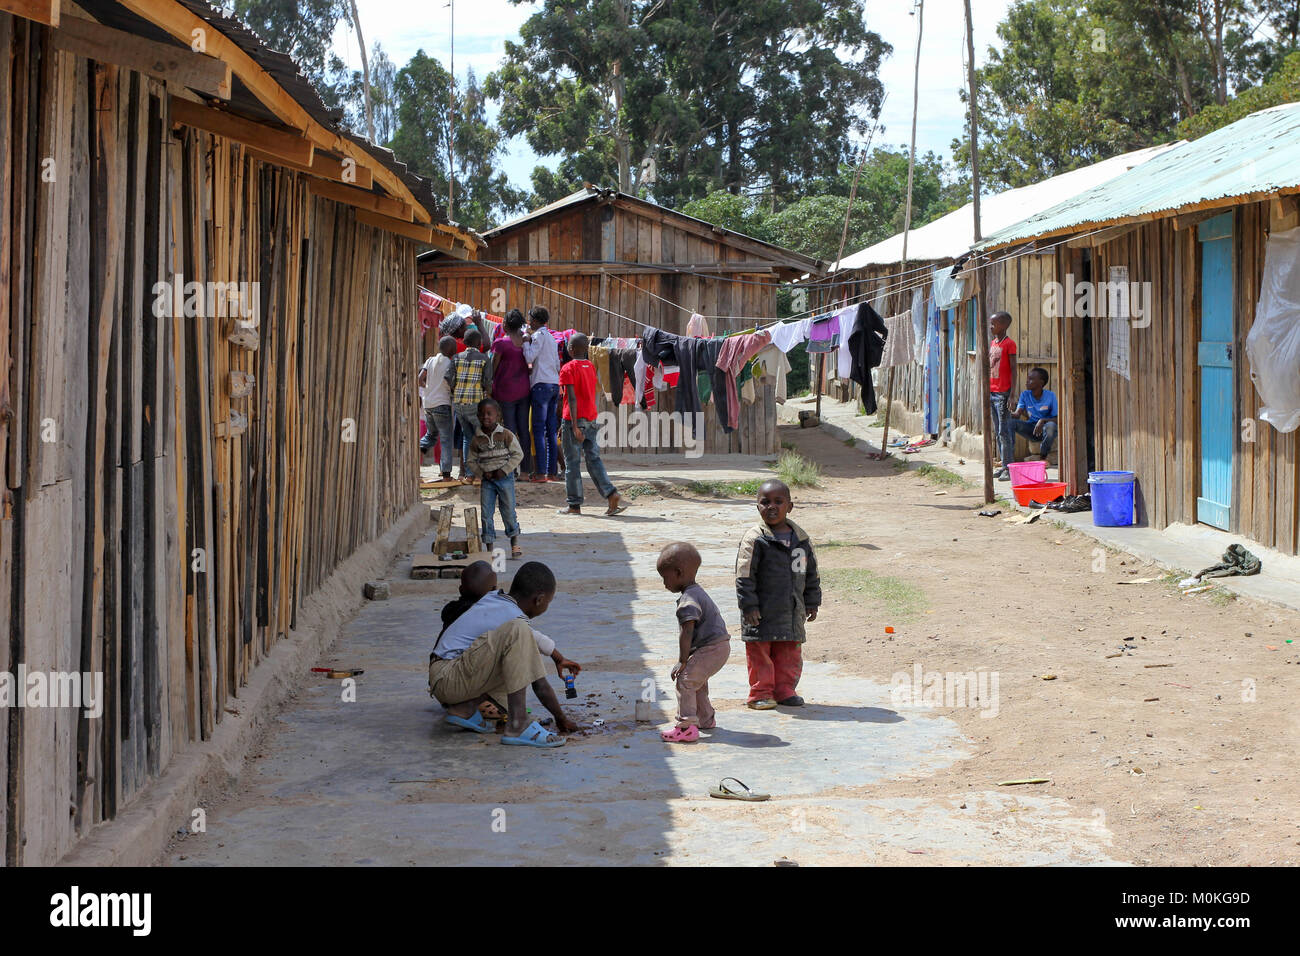 Candid scene looking down a residential street of locals playing and gathering in Nanyuki, Africa - Stock Image